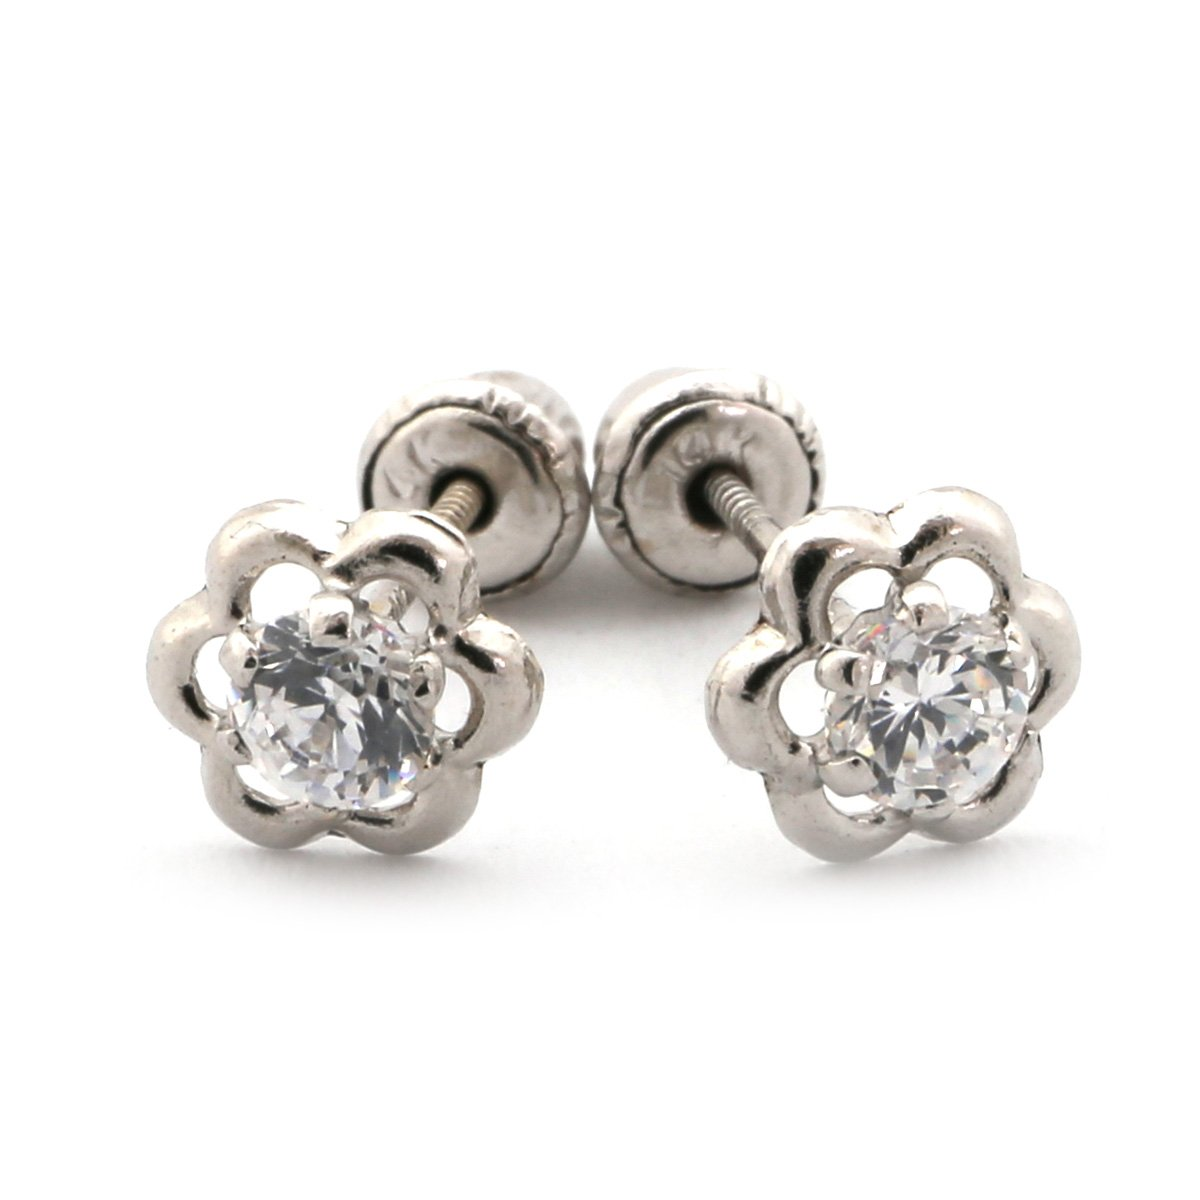 ec2e34593 Amazon.com: 14k White Gold Open Flower with White Cubic Zirconia Stud  Earrings with Child Safe Screwbacks: Jewelry